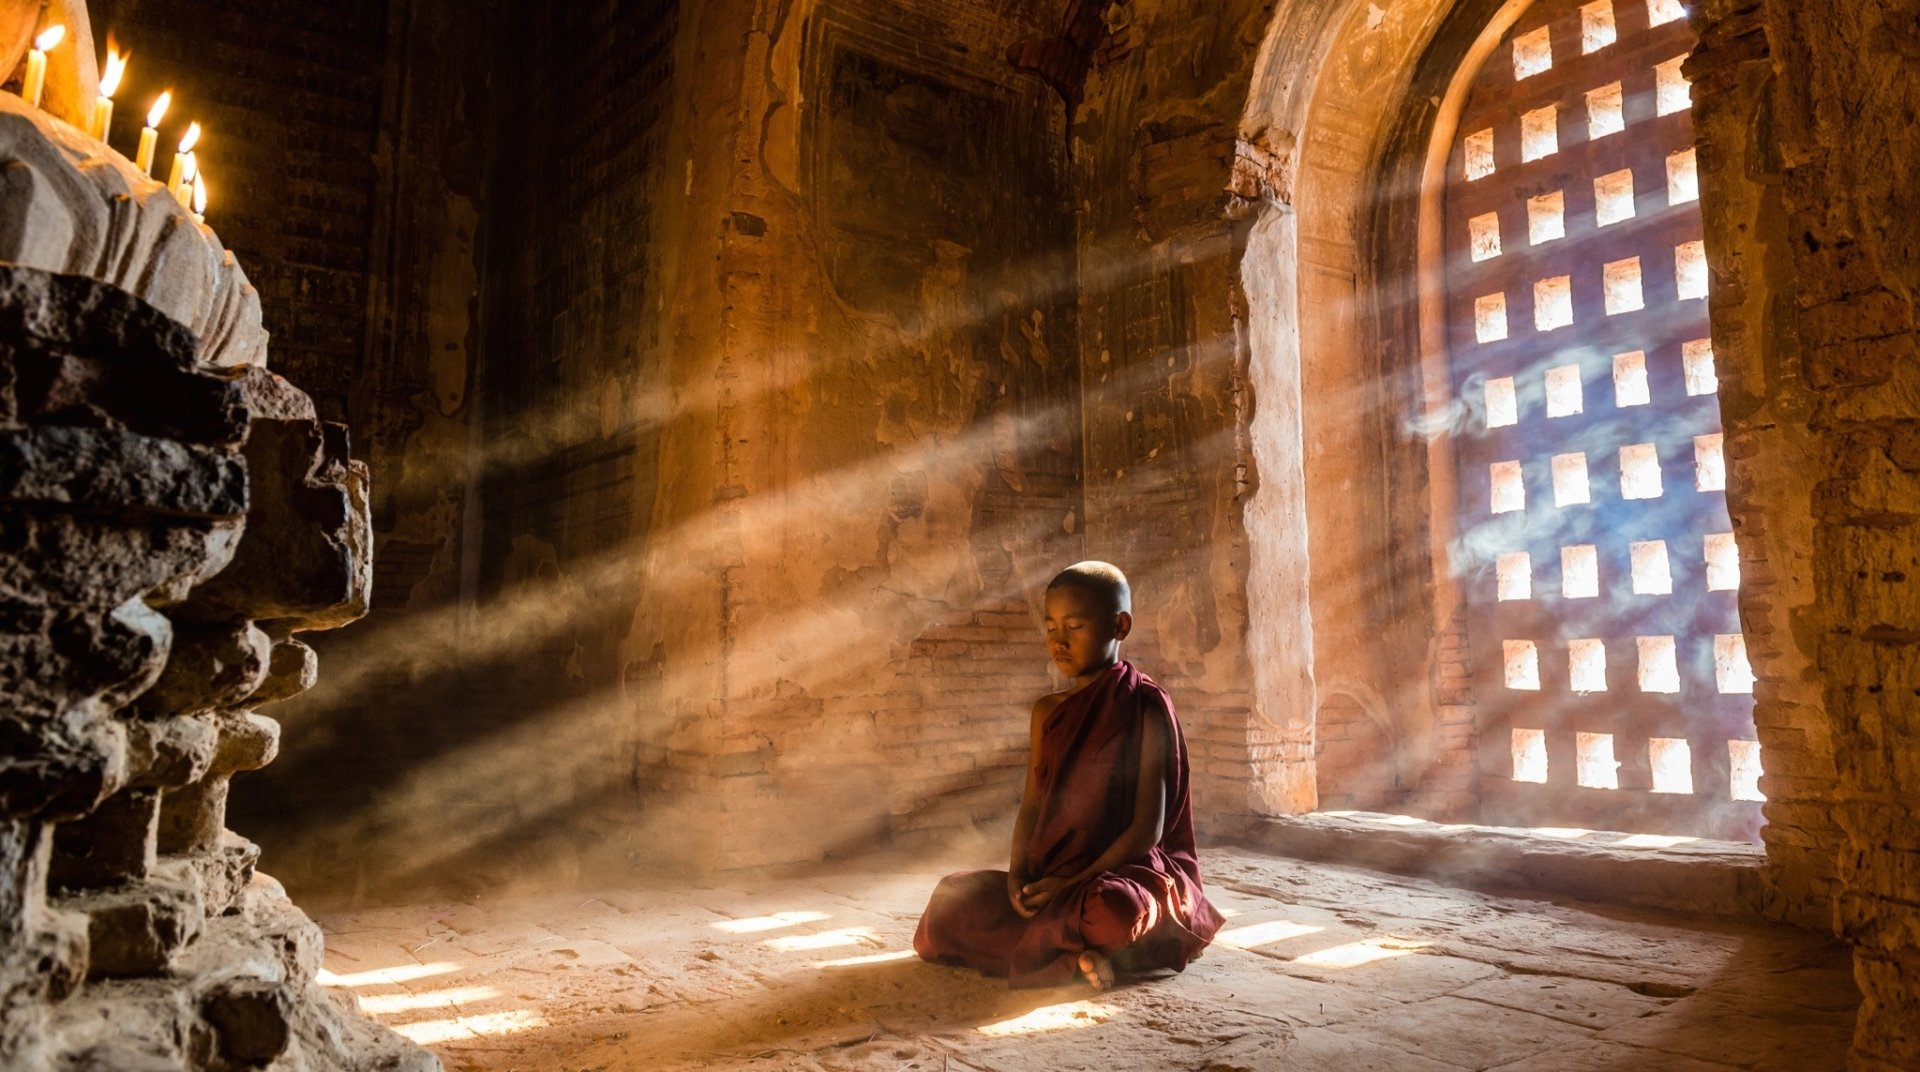 Religious - Monk  Meditation Buddhism Little Boy Sunlight Sunbeam Temple Wallpaper